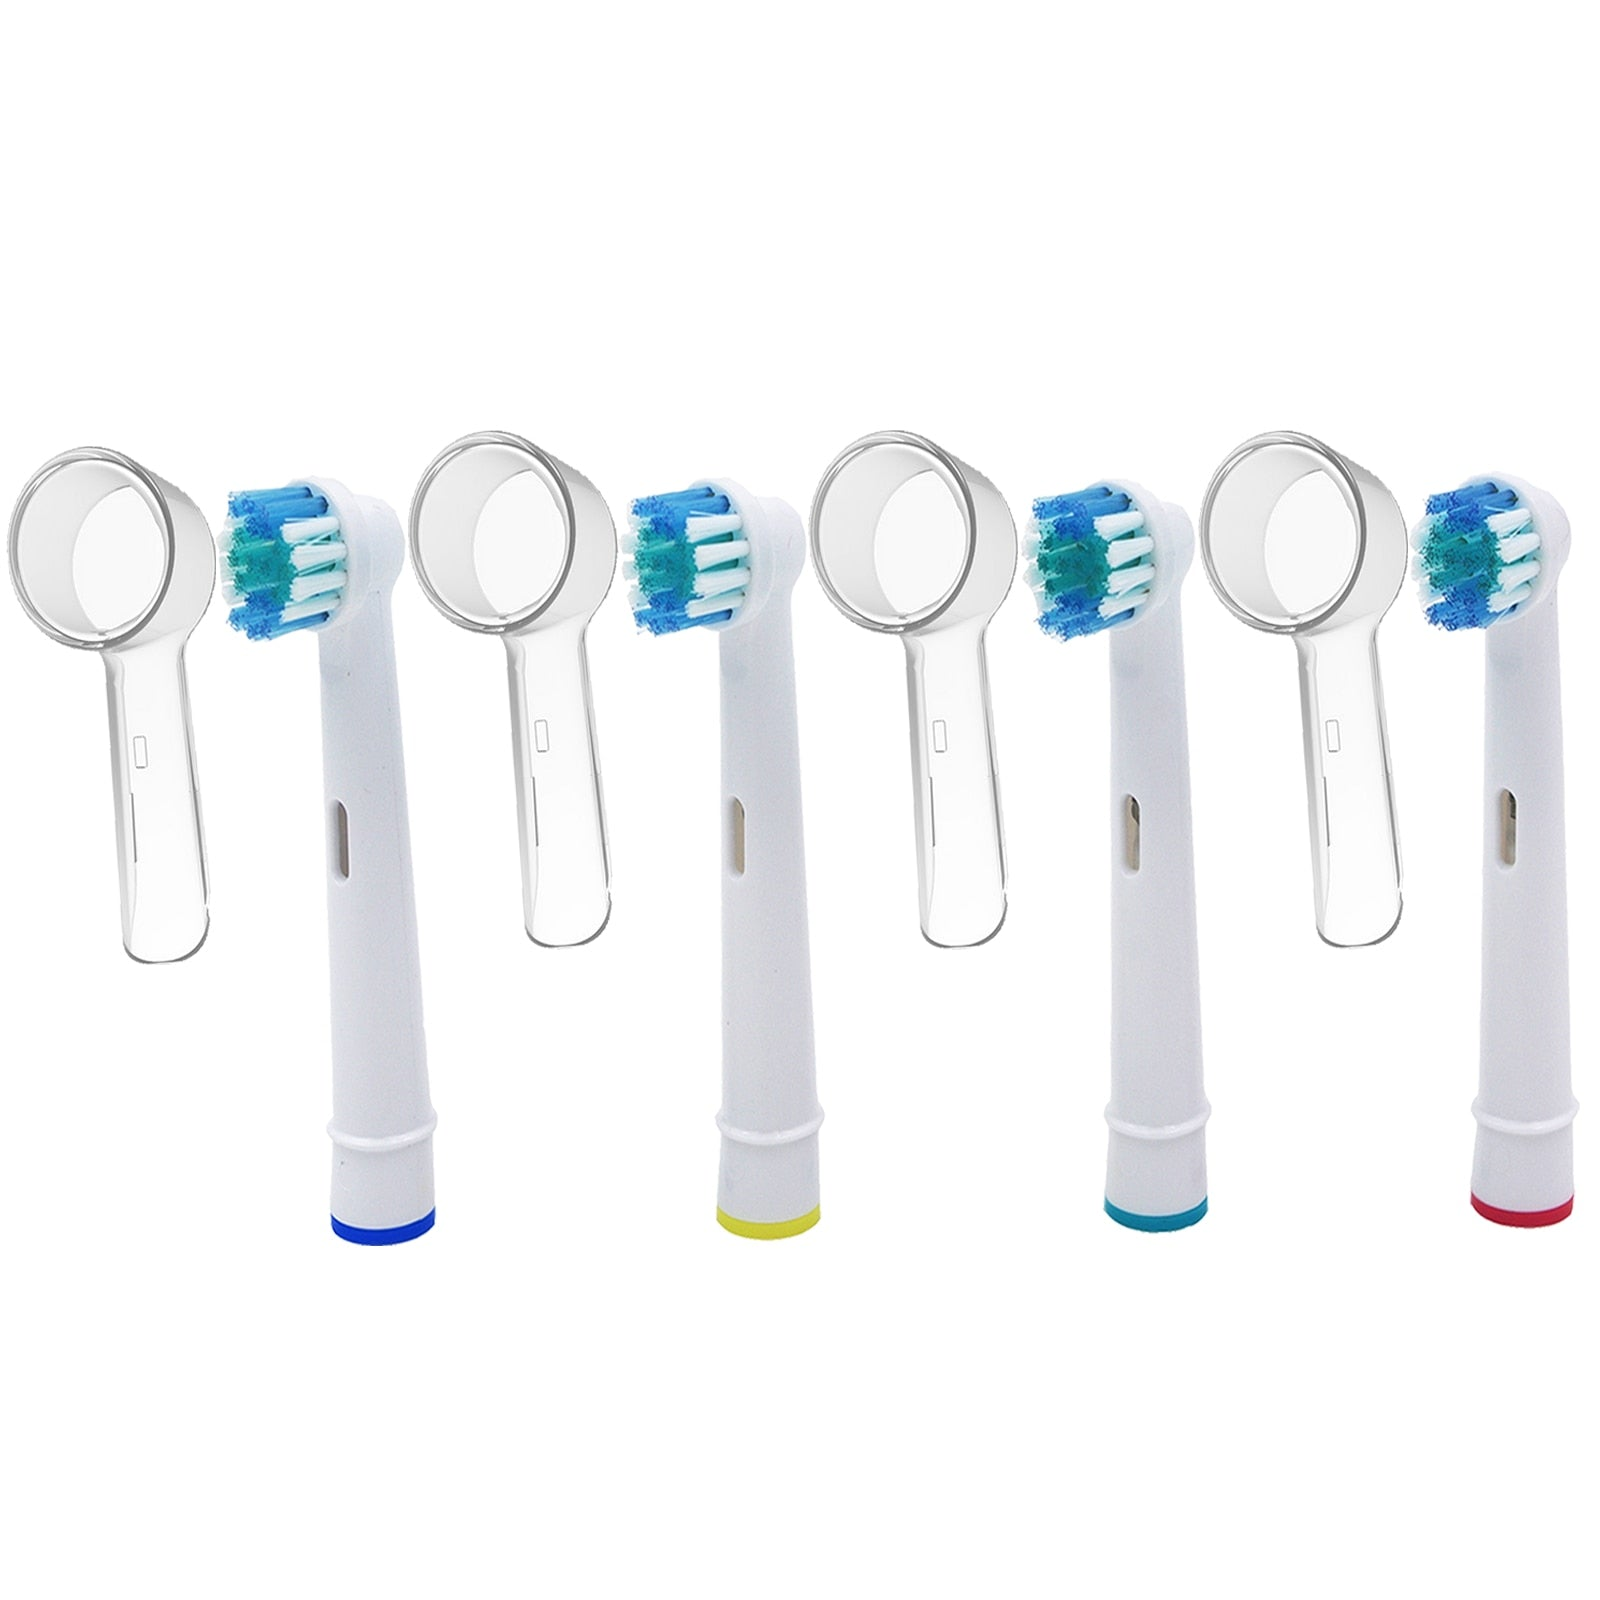 Replacement Brush Heads For Oral-B Toothbrush Heads Advance Power/Pro Health Electric Toothbrush fit Oral b D12,D16,D29,D20,D32